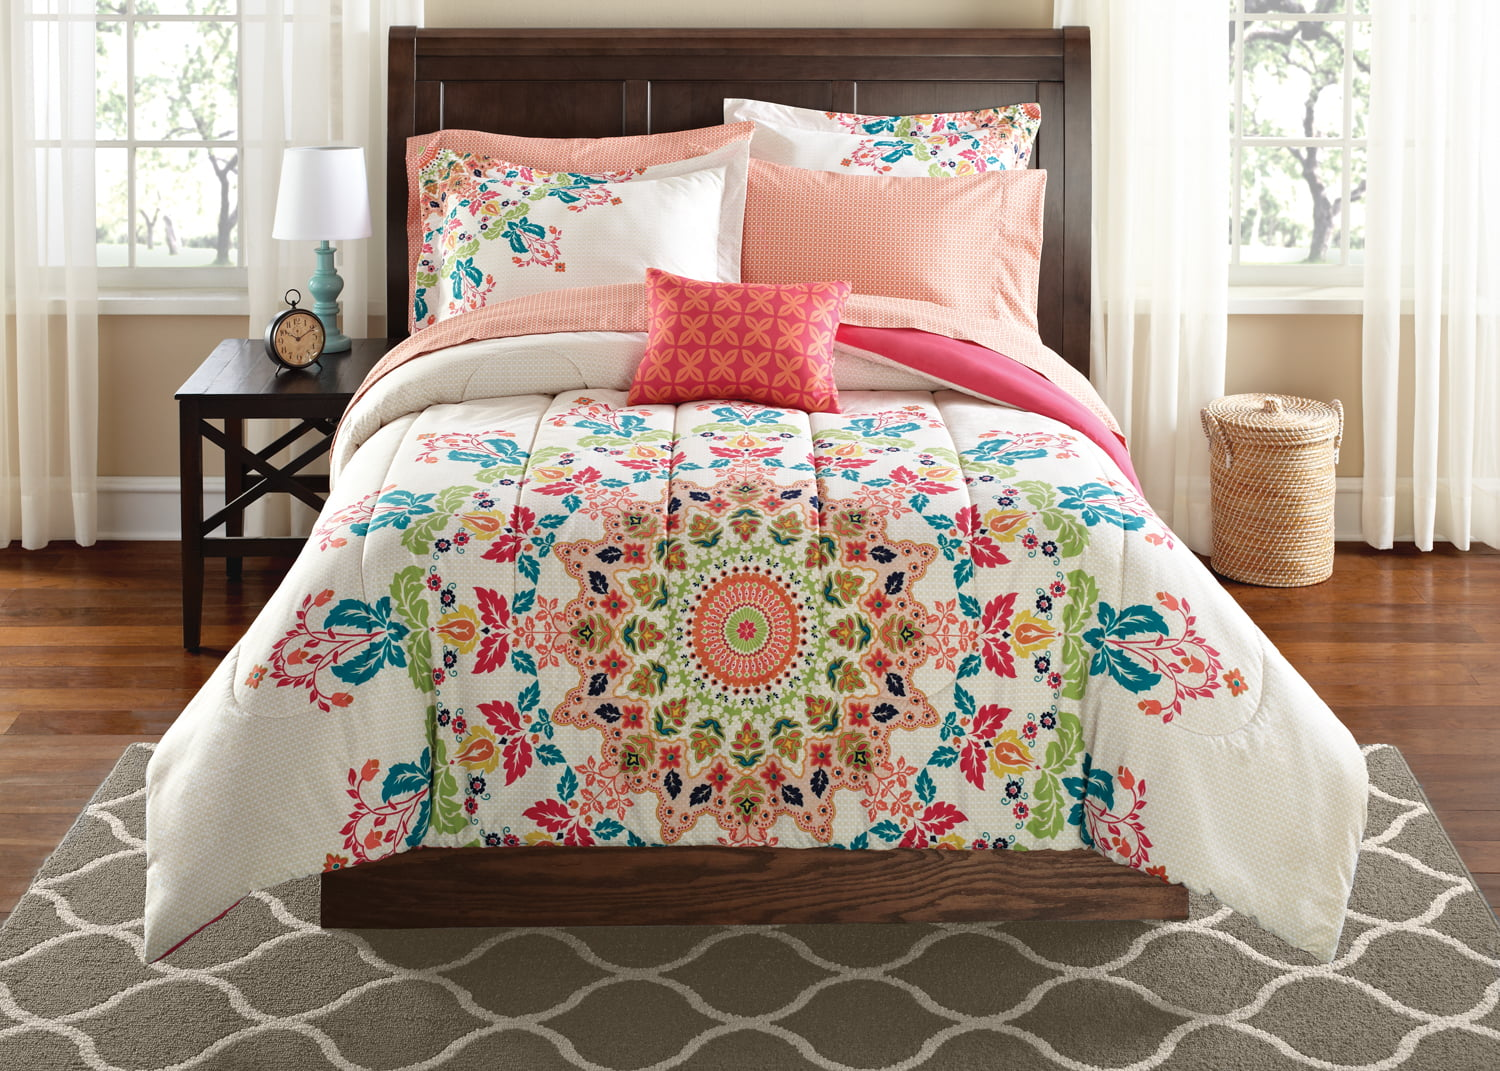 comforter bedding set queen king twin full bed duvet cover shams